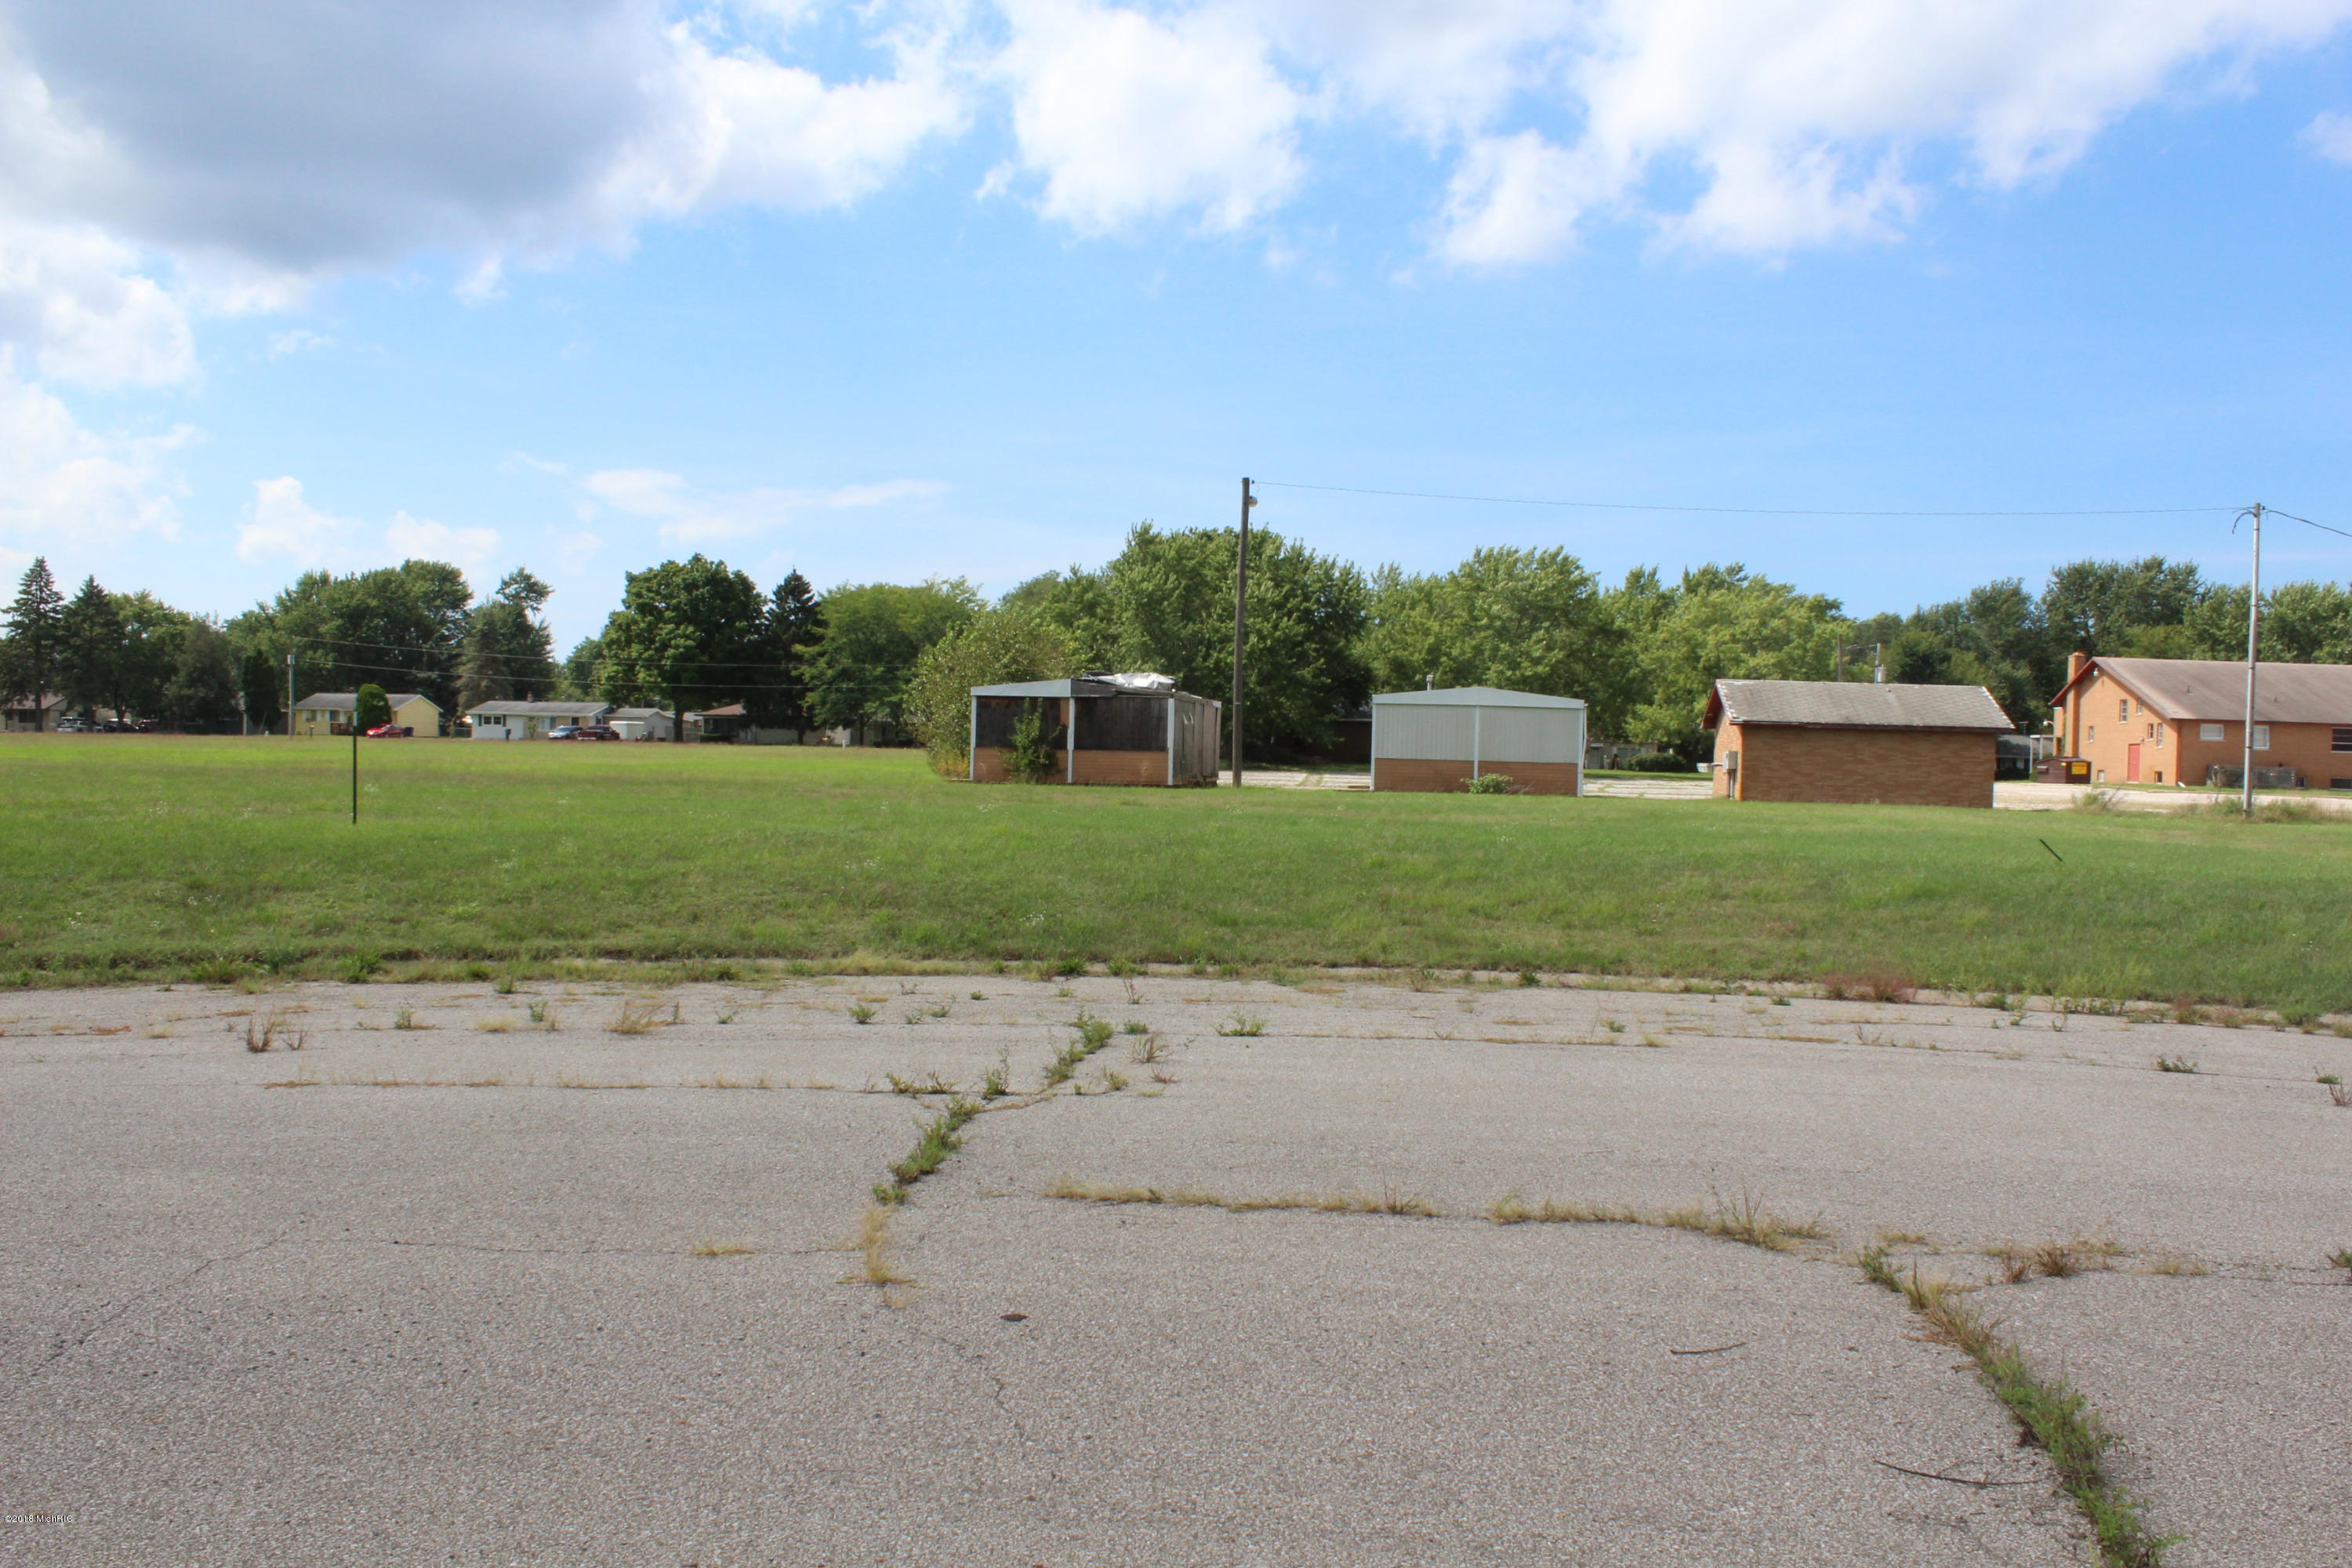 00 ALANAR COURT LOT 32 ROAD, BENTON HARBOR, MI 49022